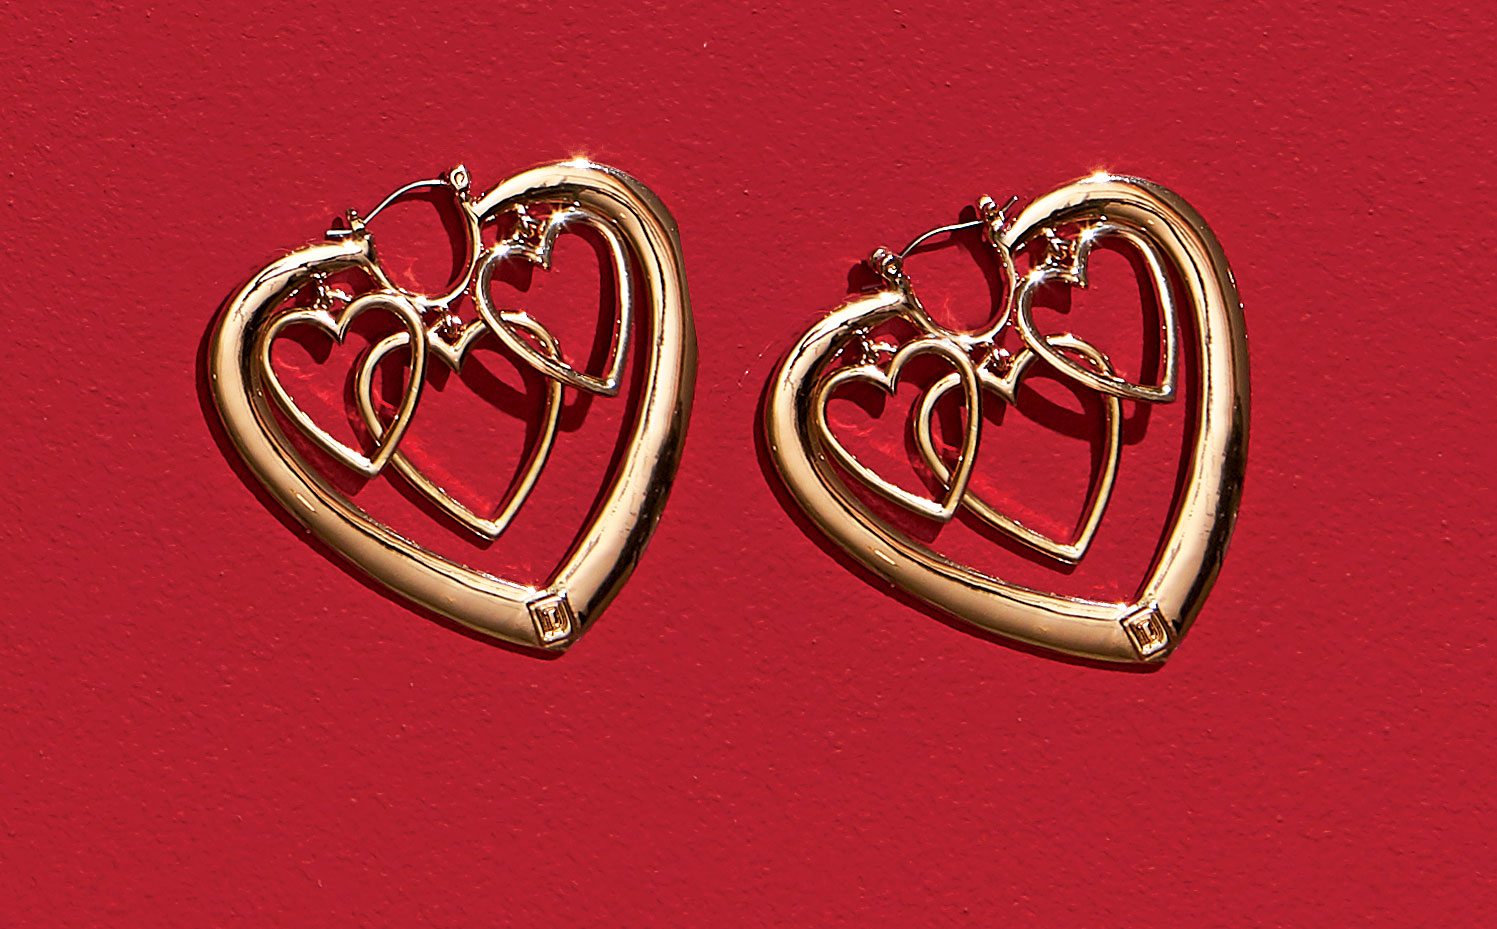 The Valentine's Day Gift Your Girlfriend Will Love: Heart-Shaped Earrings